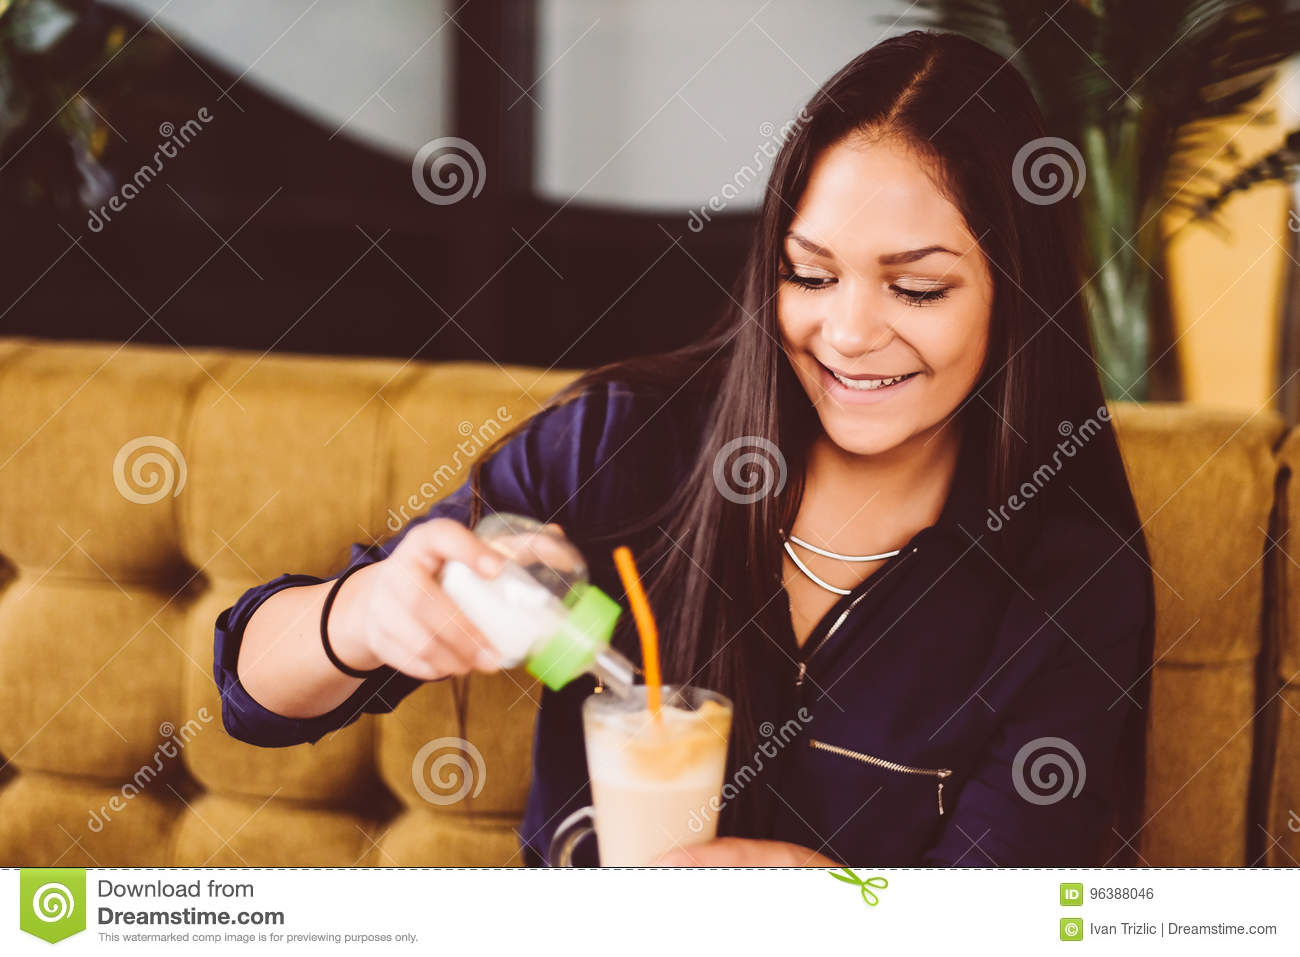 Beautiful girl drinking ice mocha shake in a cafe